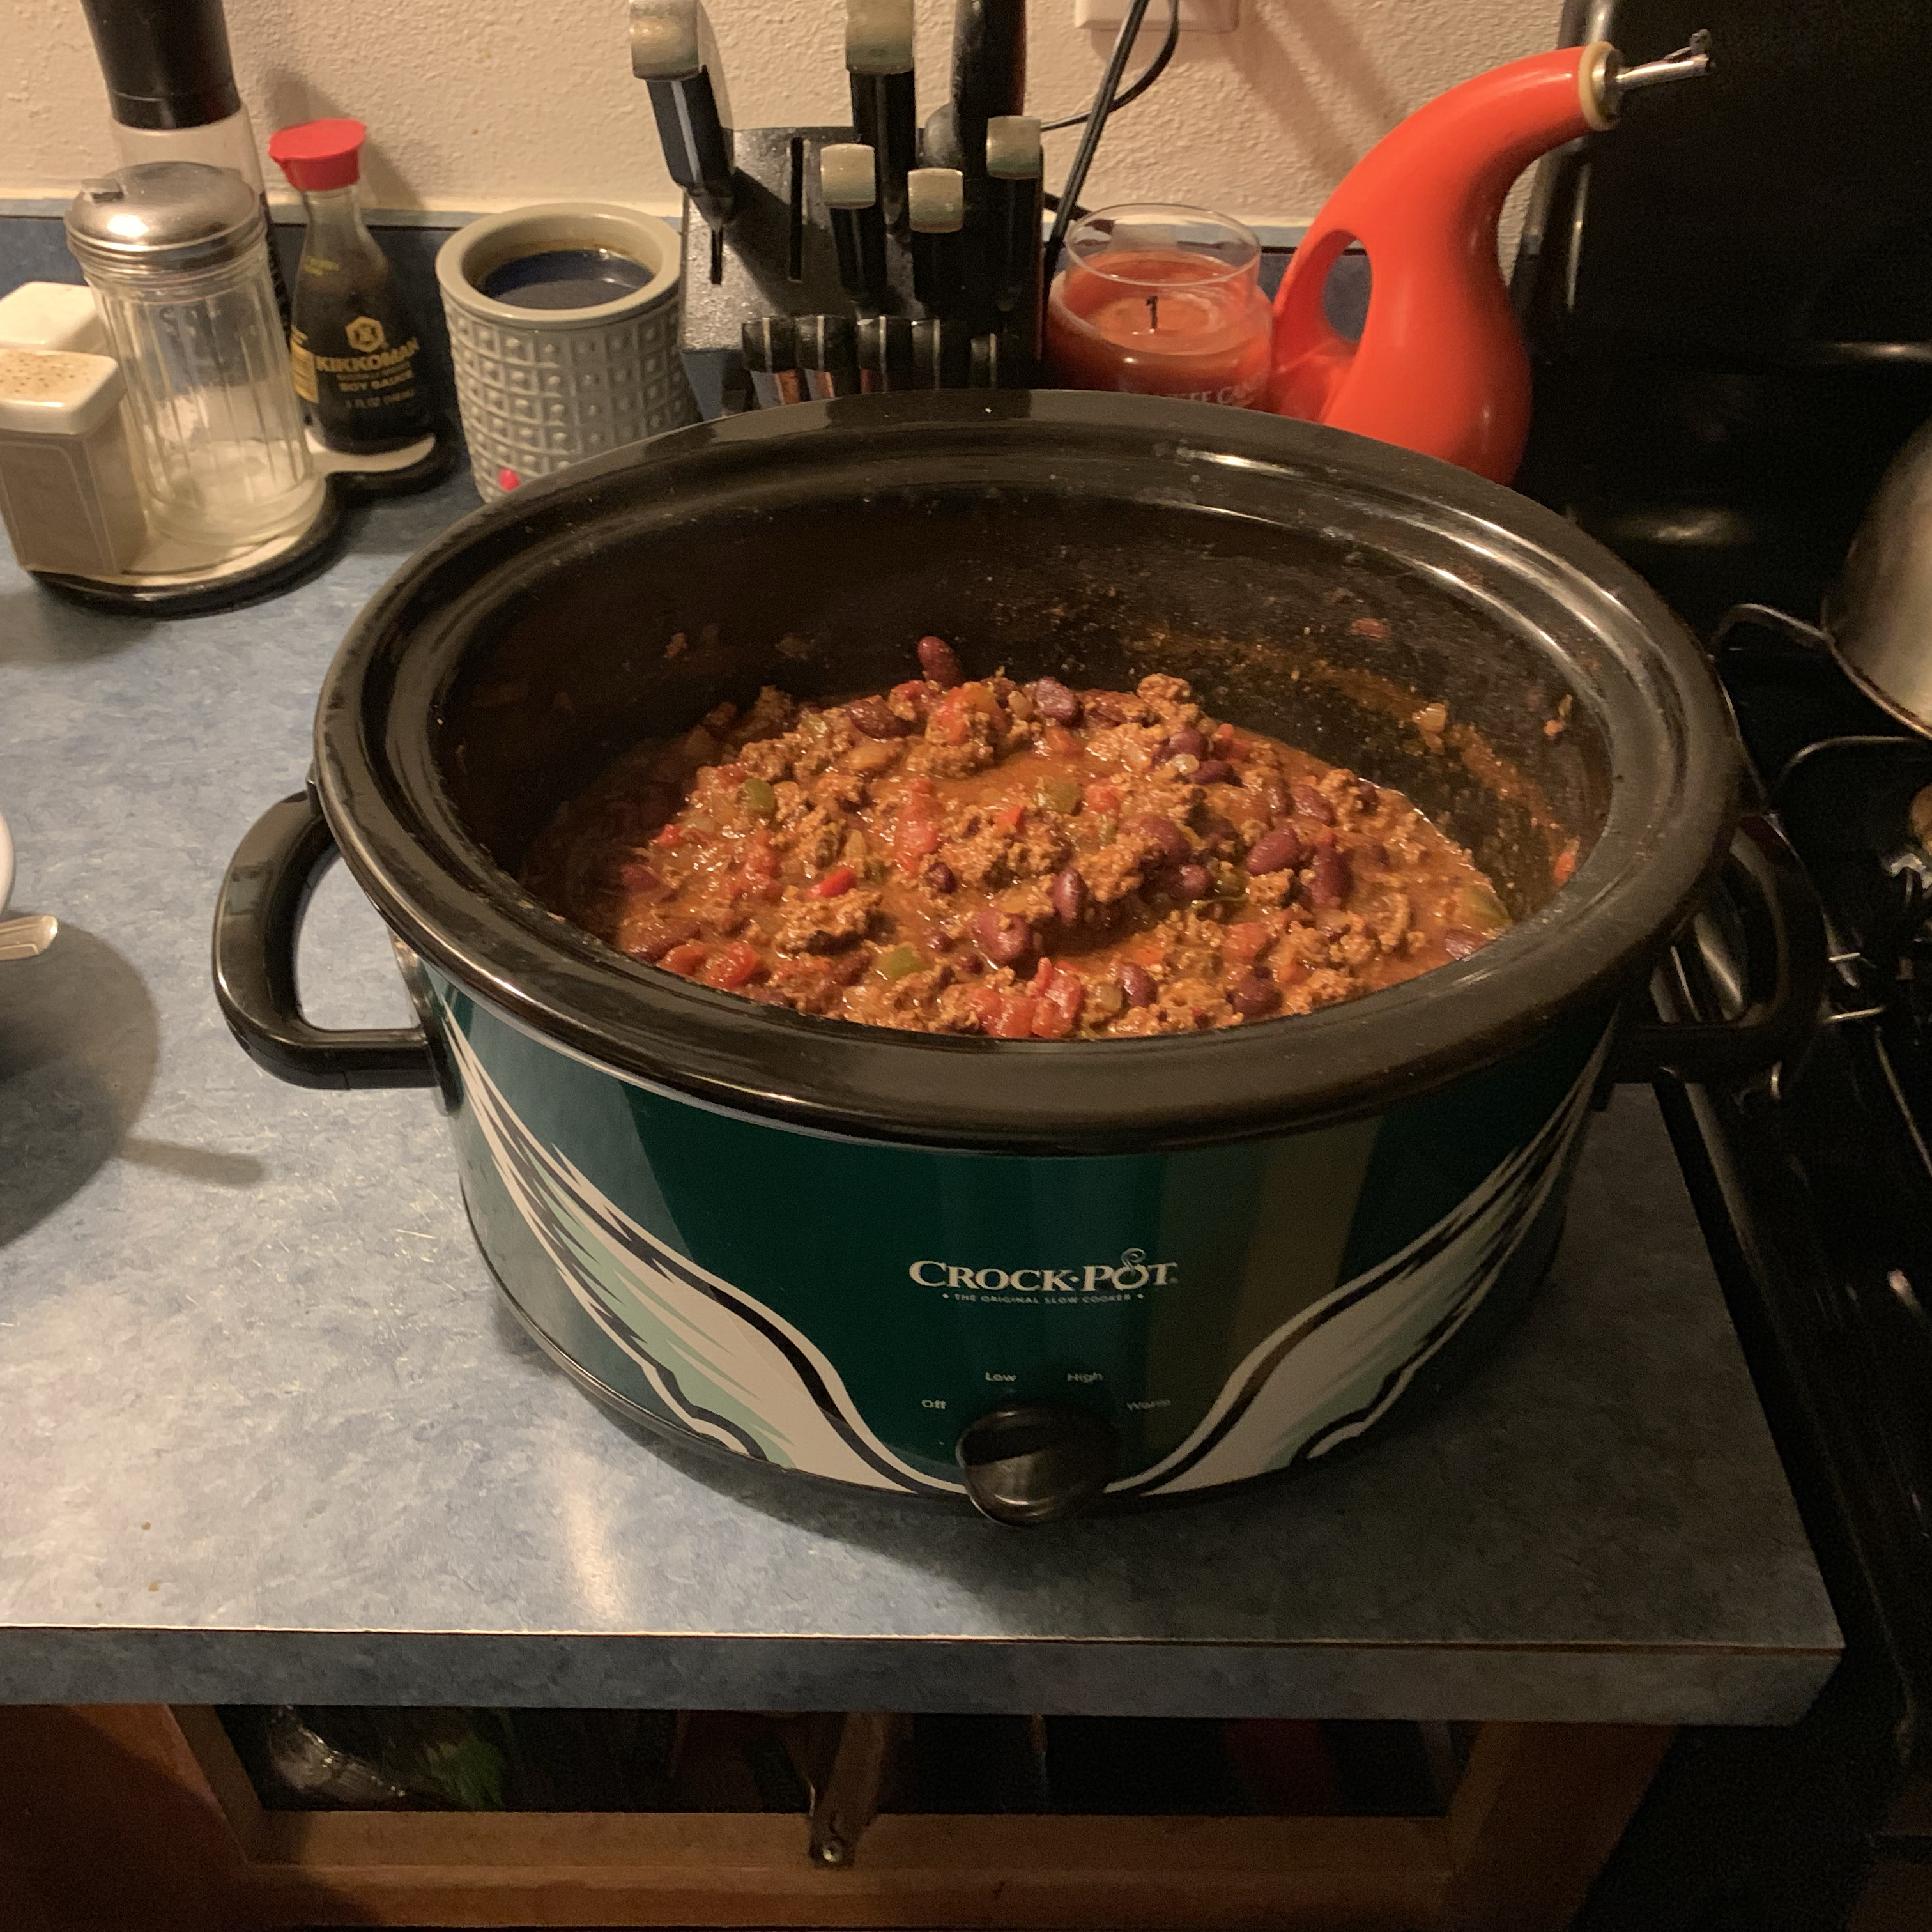 Spicy Slow-Cooked Chili FJTJ1021